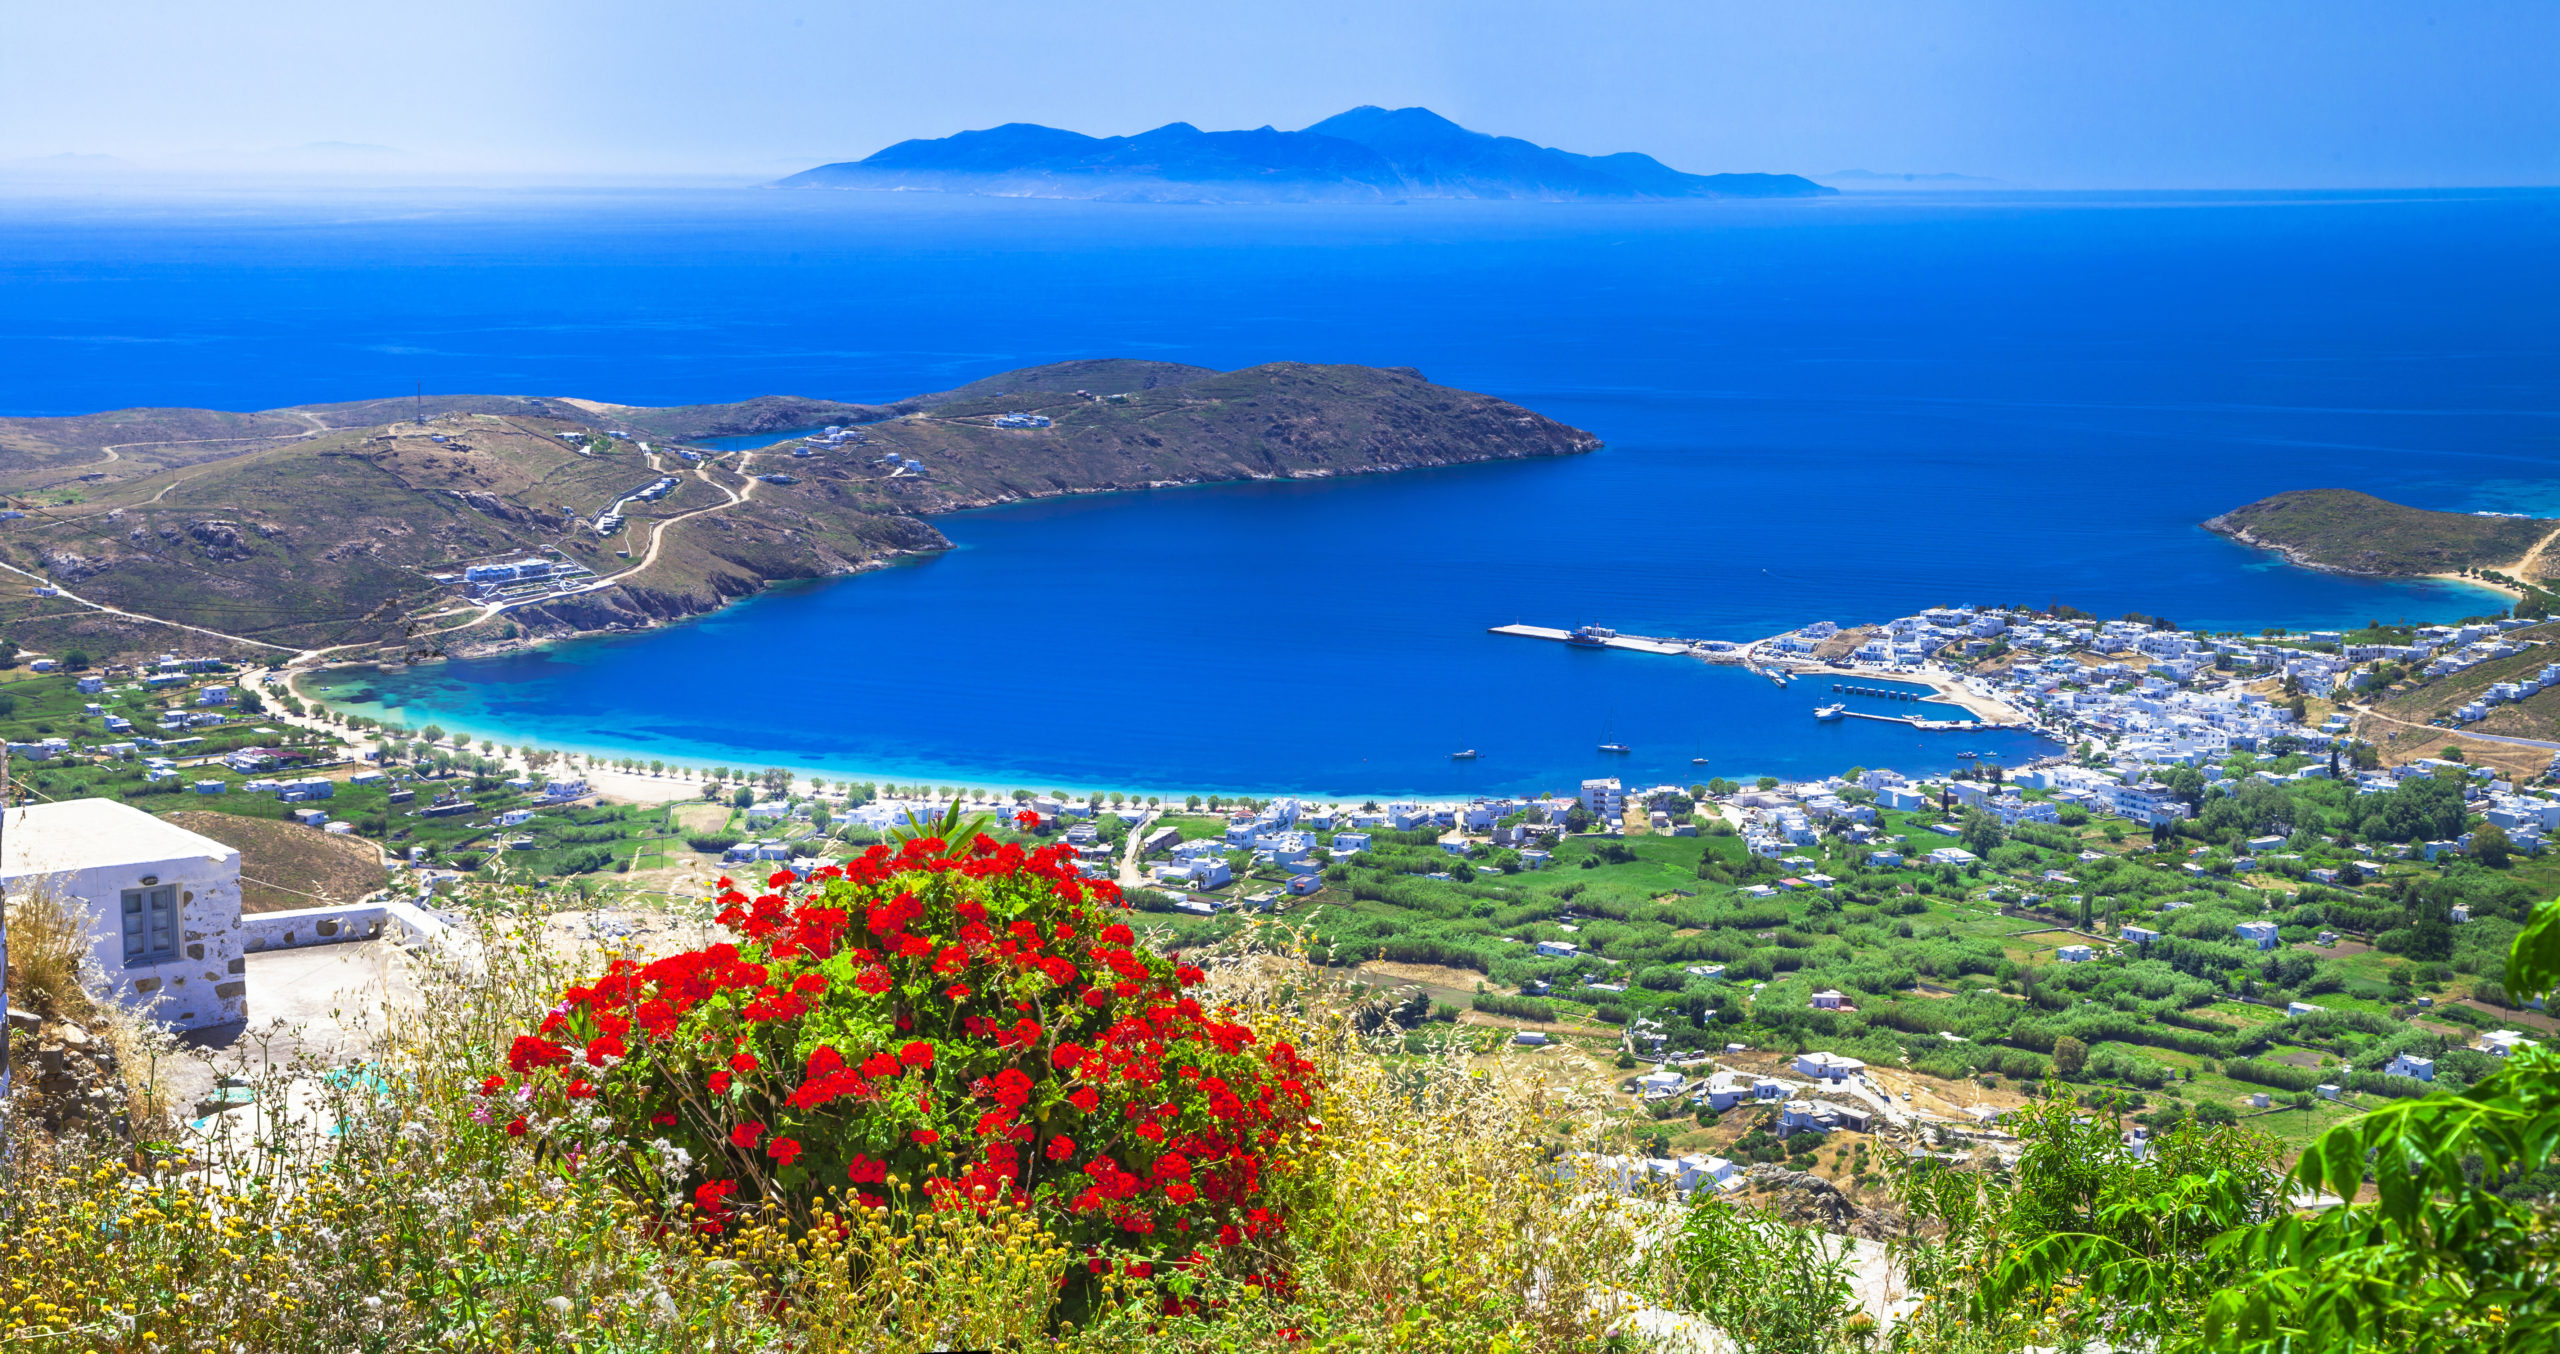 aerial view of the beautiful coast of Greece